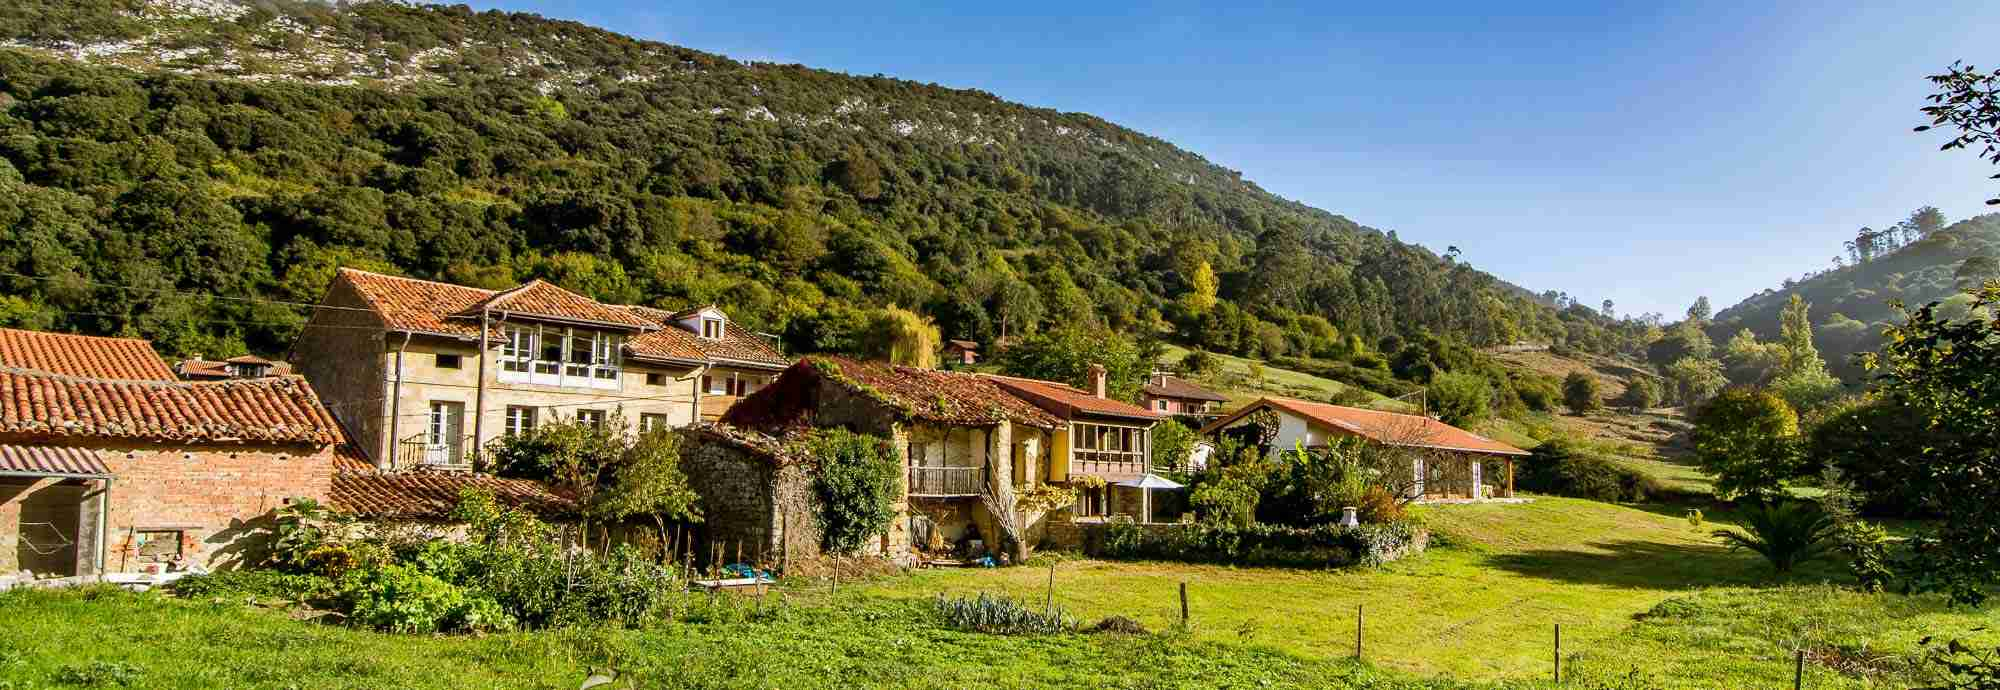 Holiday  Villas in Northern Spain